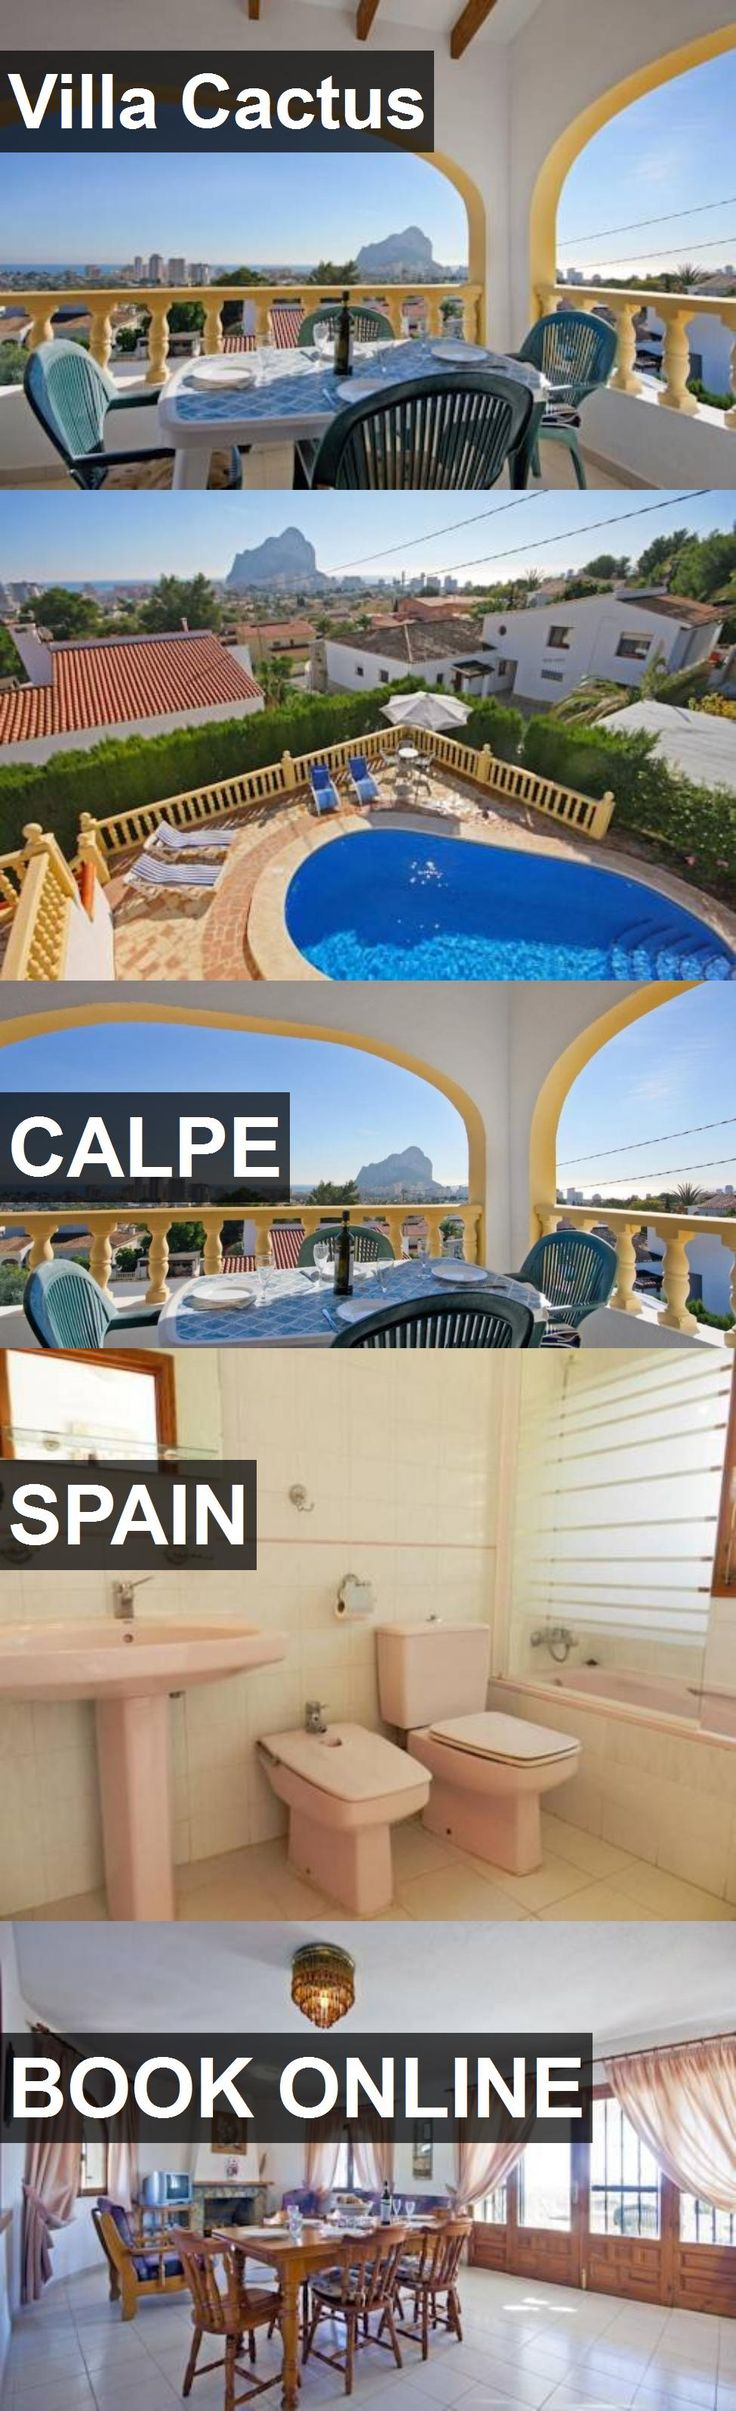 Hotel Villa Cactus in Calpe, Spain. For more information, photos, reviews and best prices please follow the link. #Spain #Calpe #travel #vacation #hotel